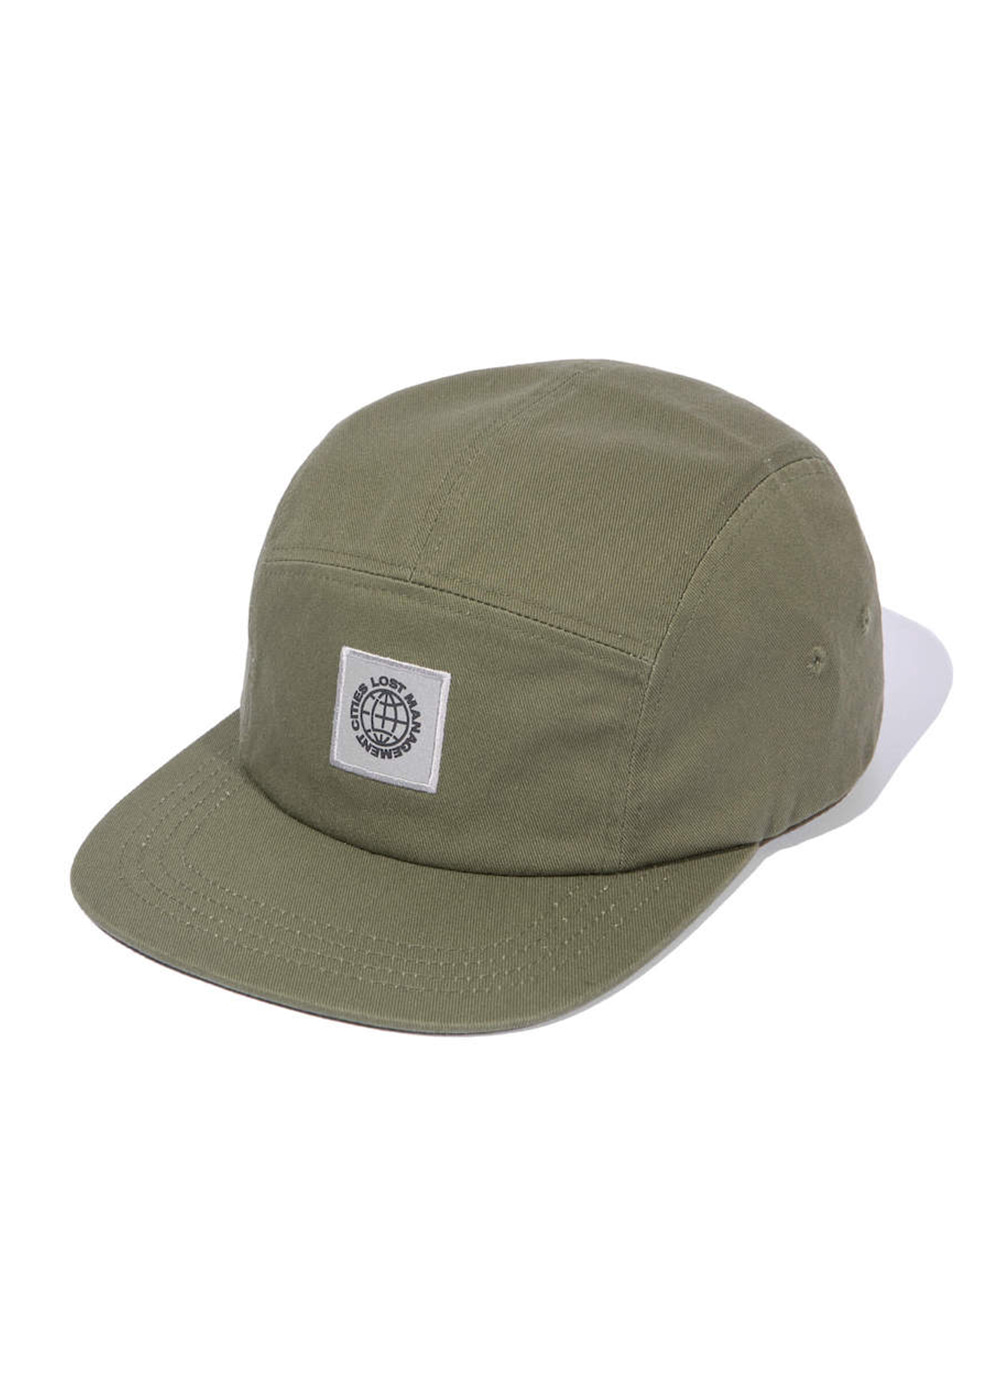 LMC RFLCTV PATCH CAMP CAP olive